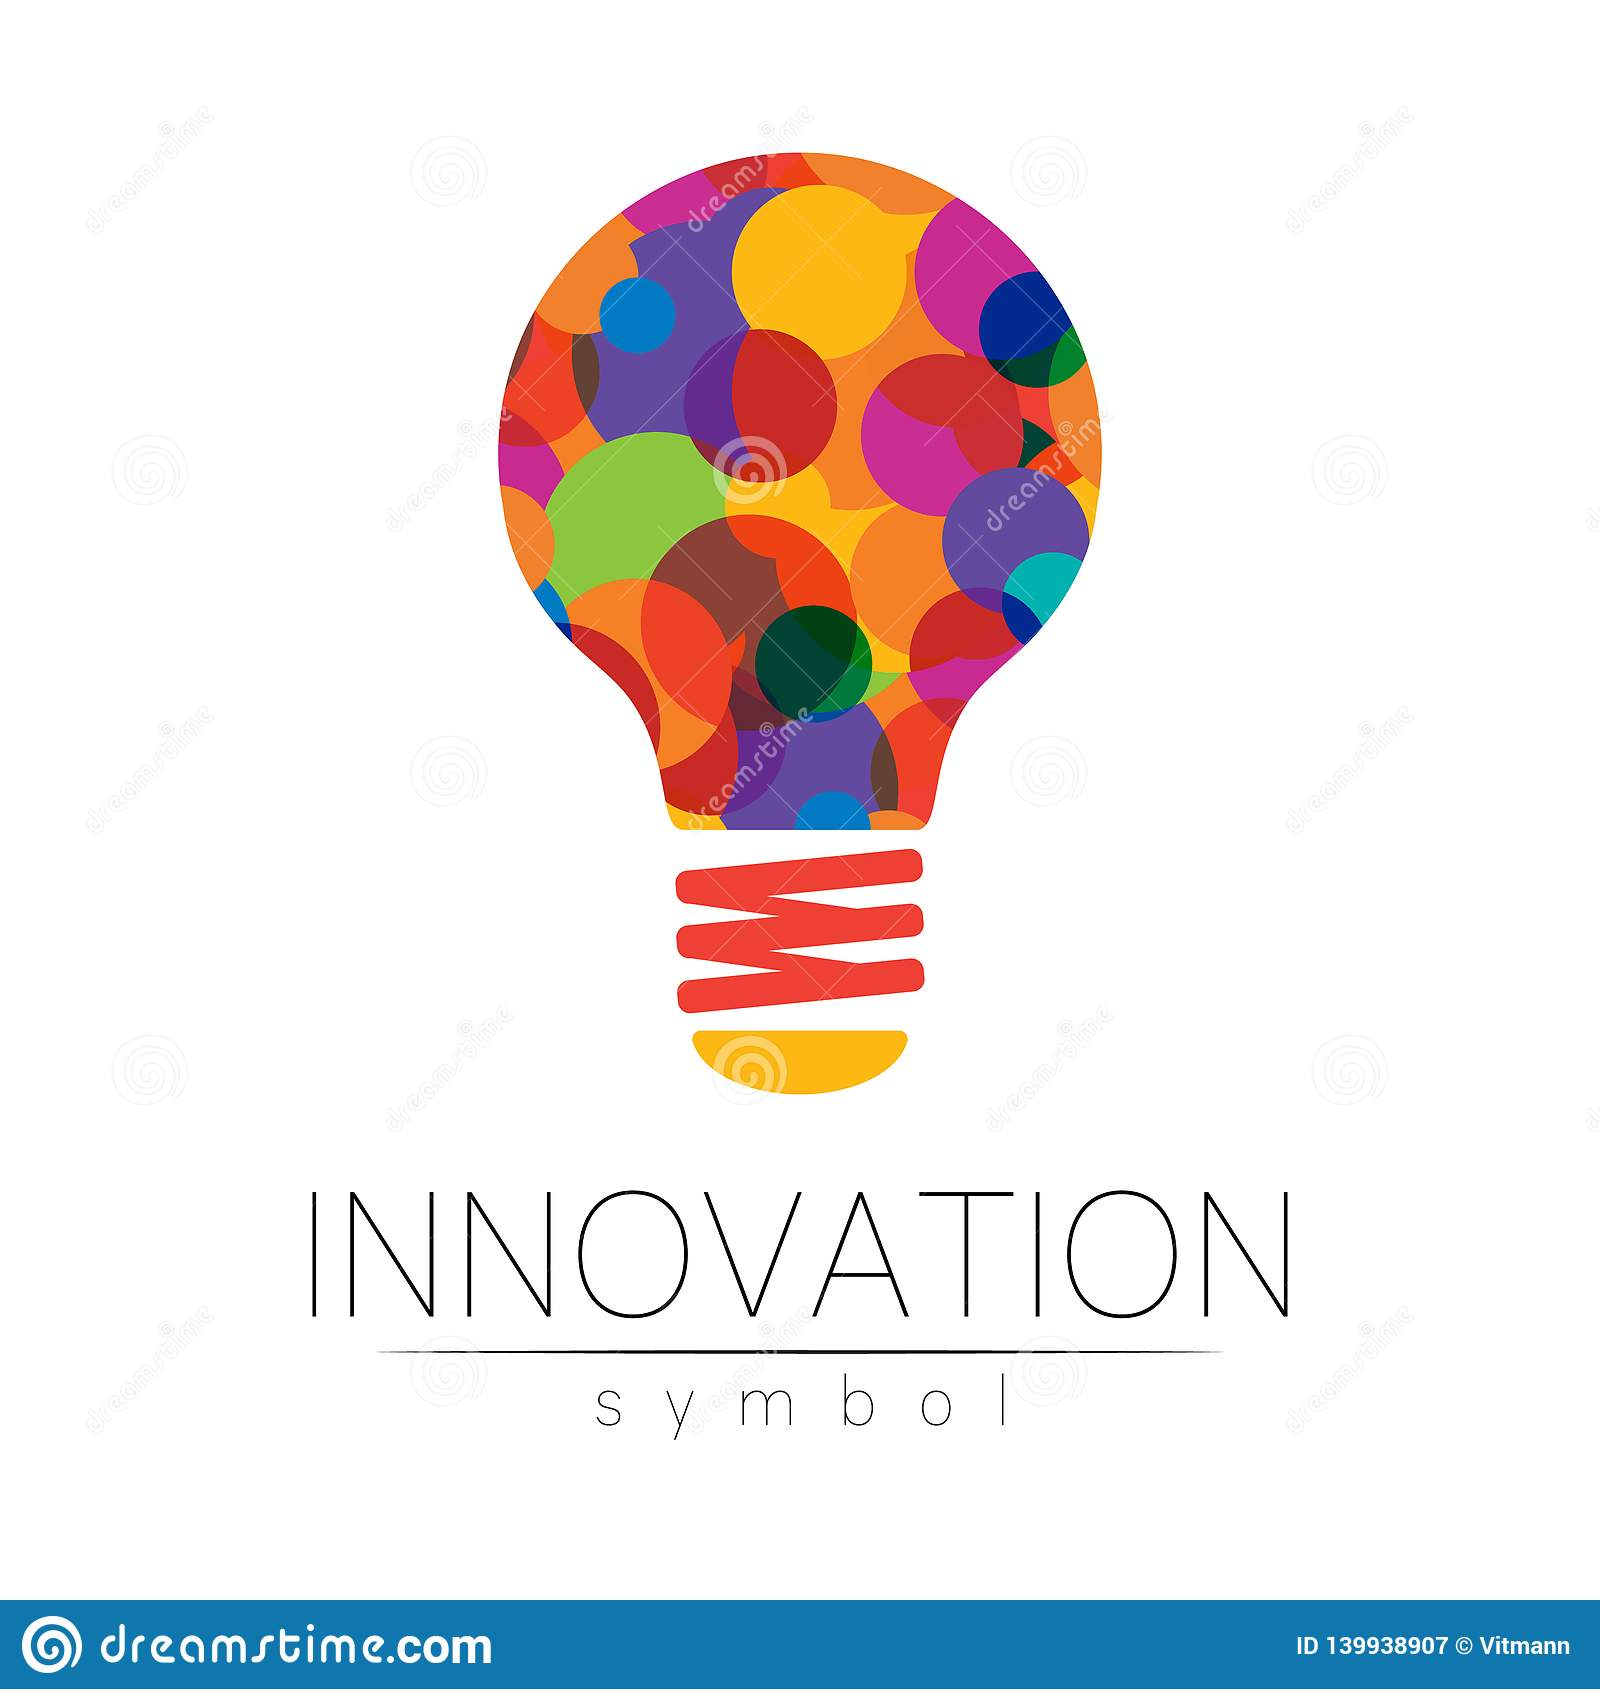 Logo sign of innovation in science. Lamp symbol for concept, business, technology, creative idea, web. Rainbow color